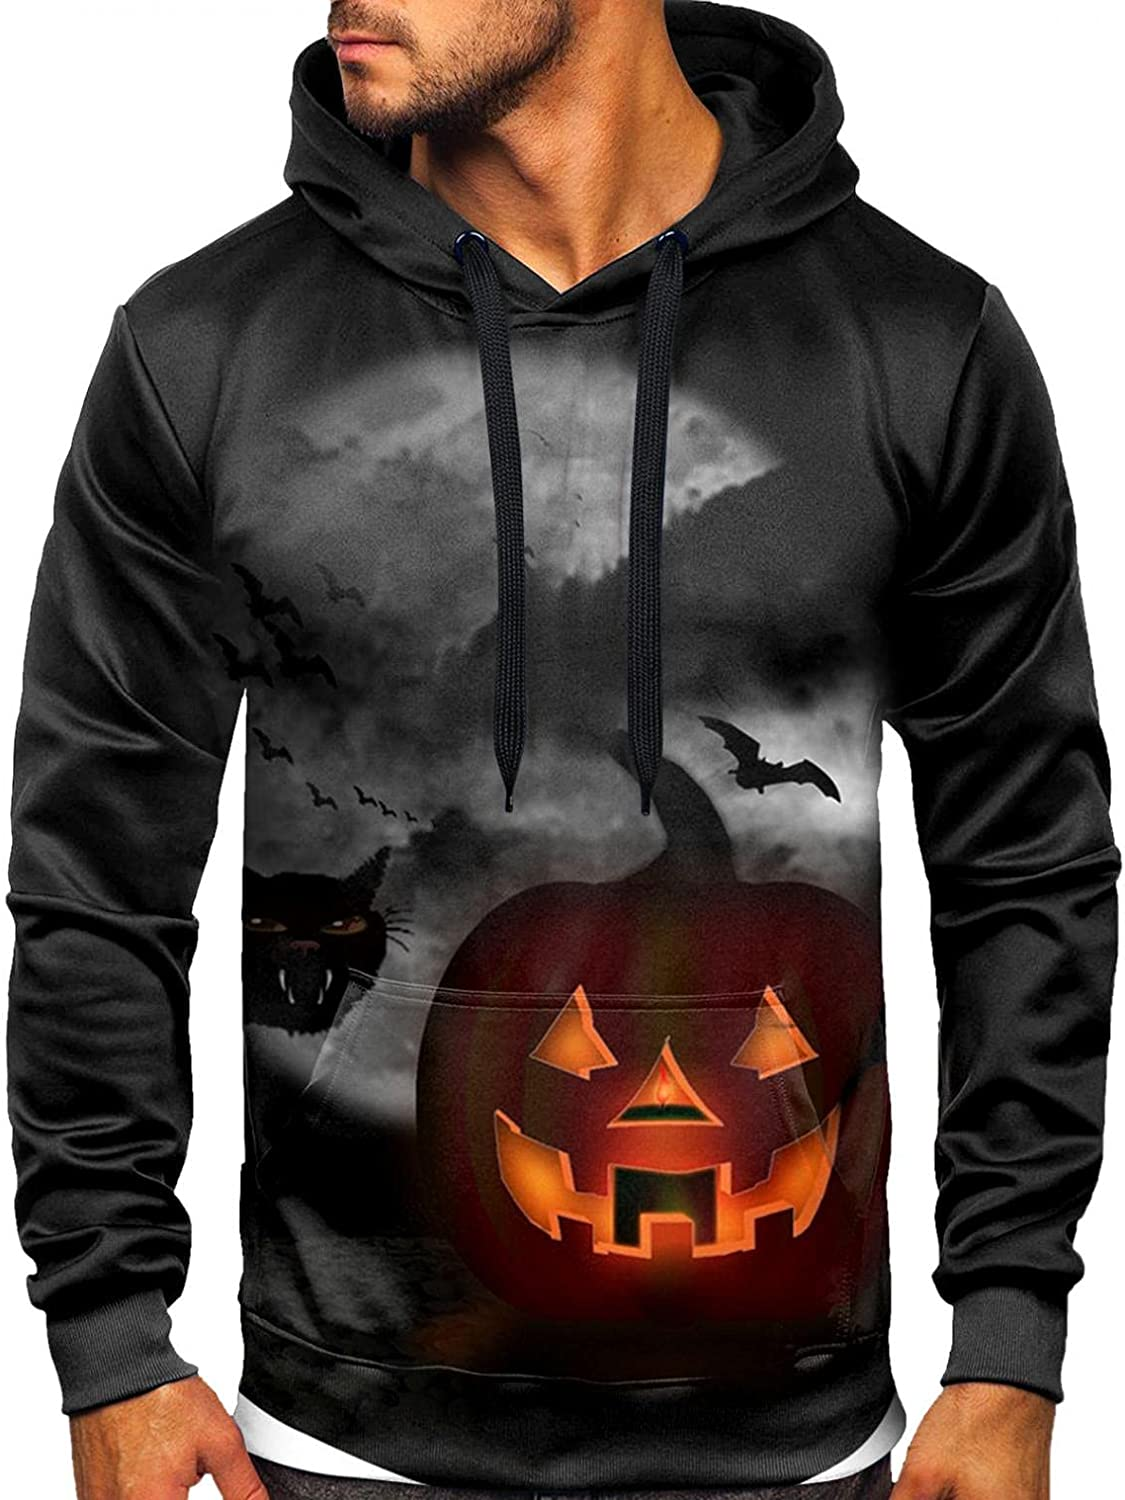 Men's Pullover Hoodies Halloween 3D Printing Hooded Sweatshirts Long Sleeve T-Shirt Blouse Tops with Pocket for Men